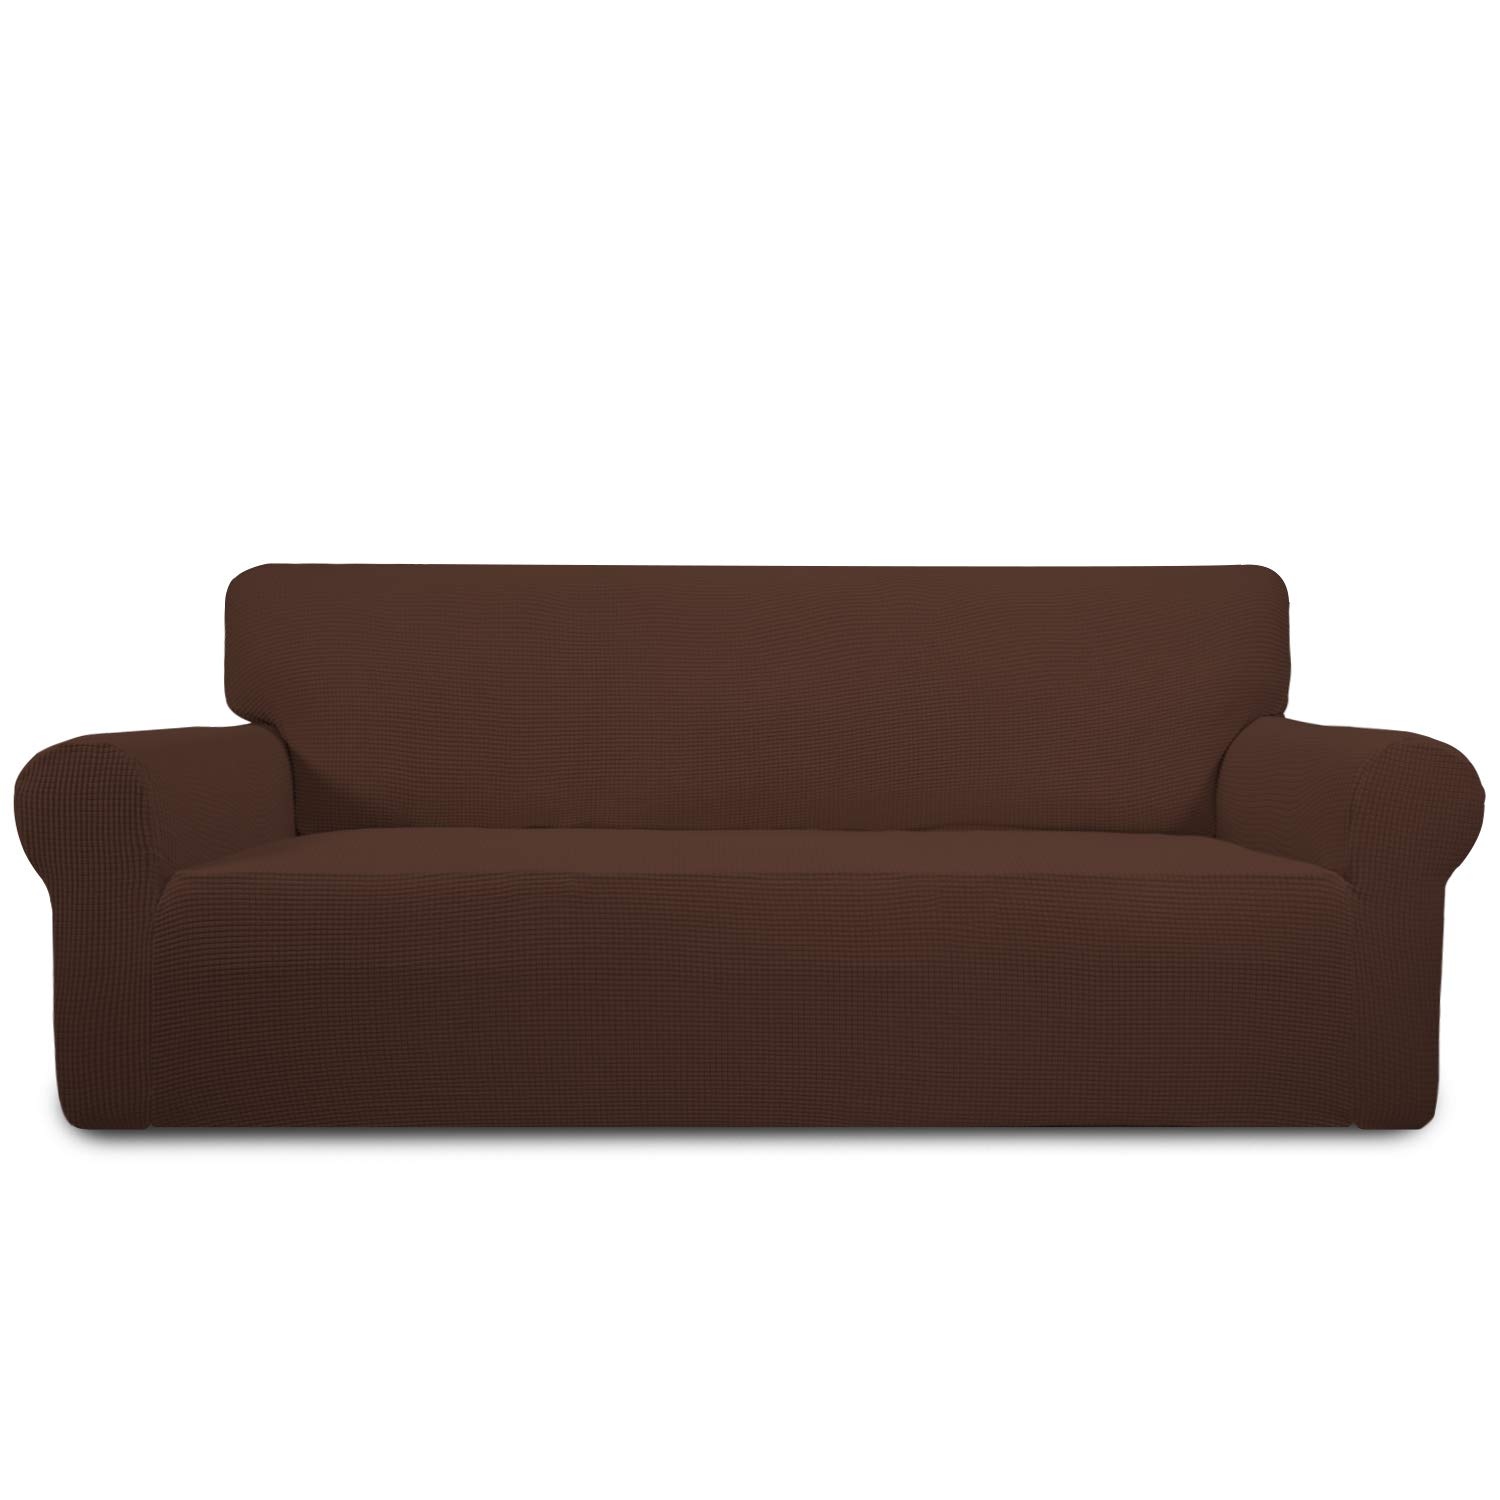 Best Rated in Sofa Slipcovers & Helpful Customer Reviews - Amazon.com